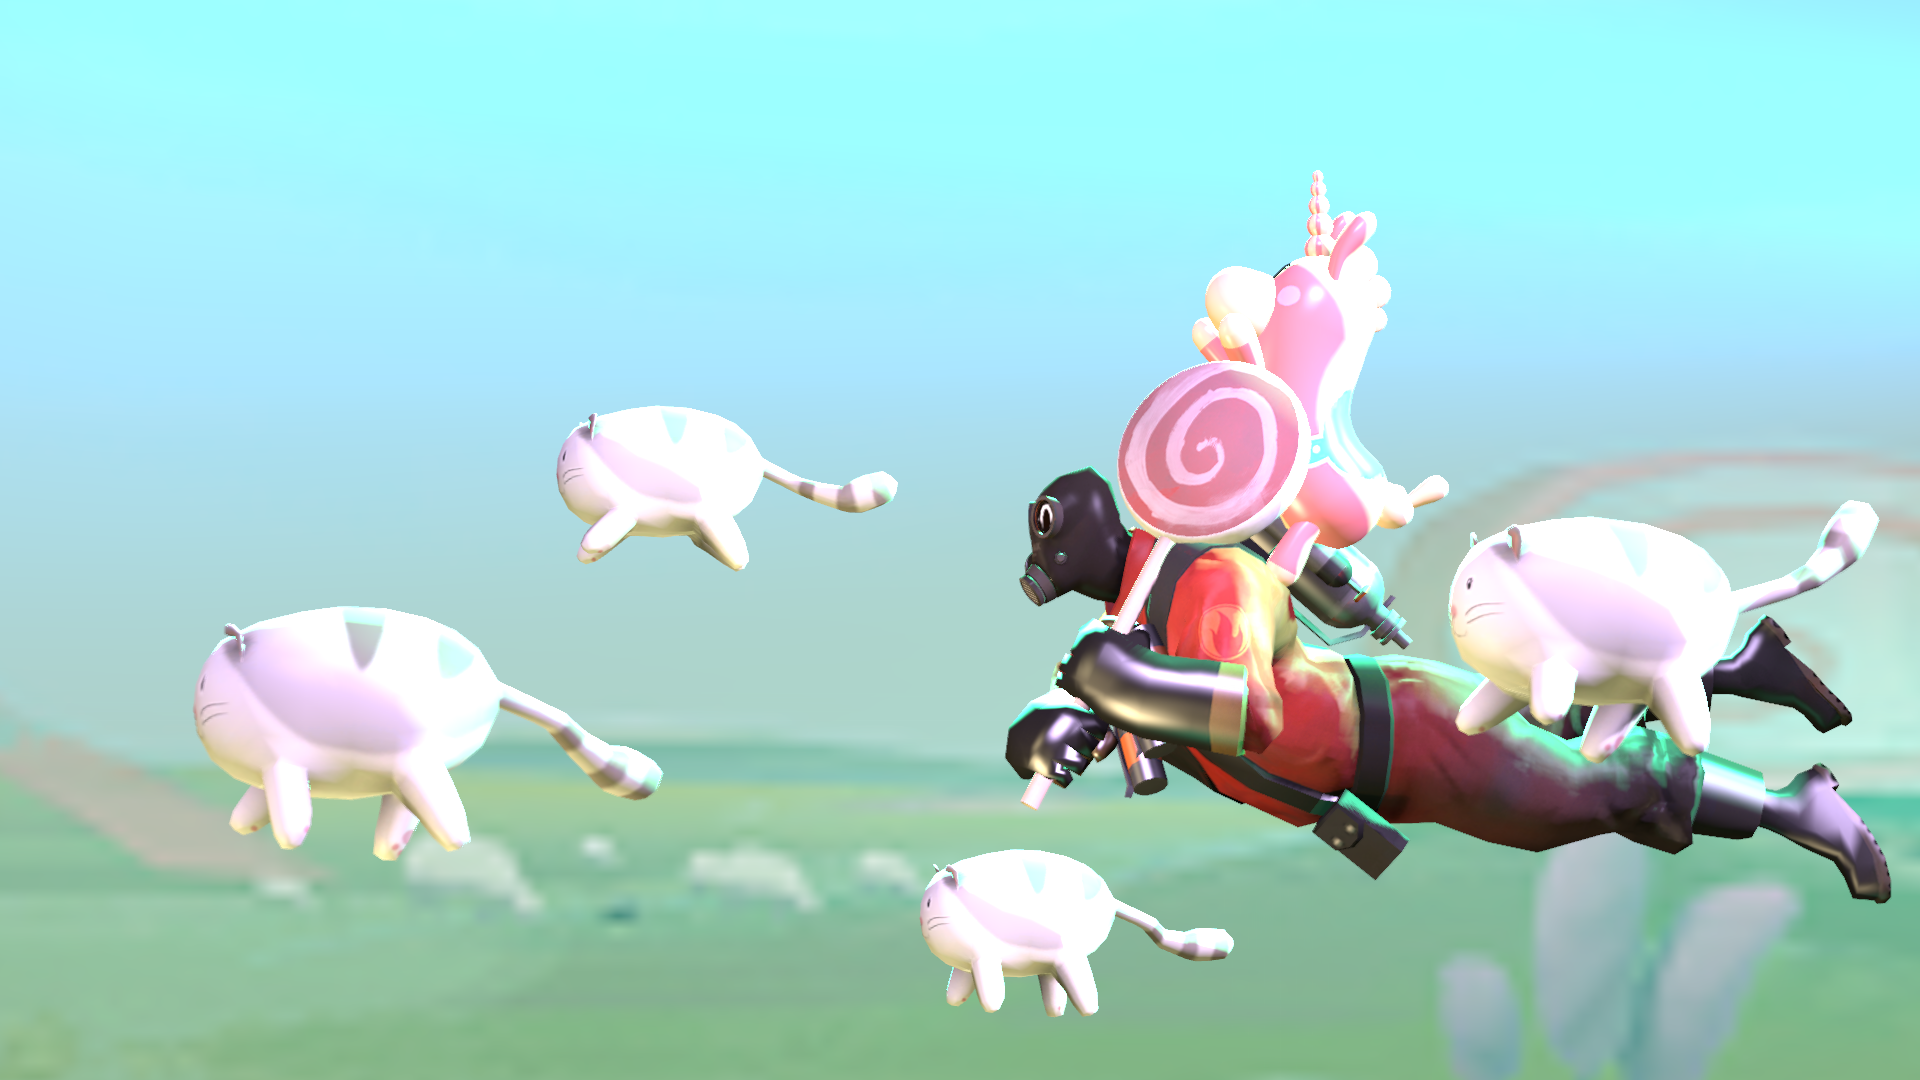 tf2 pyro flying1.png